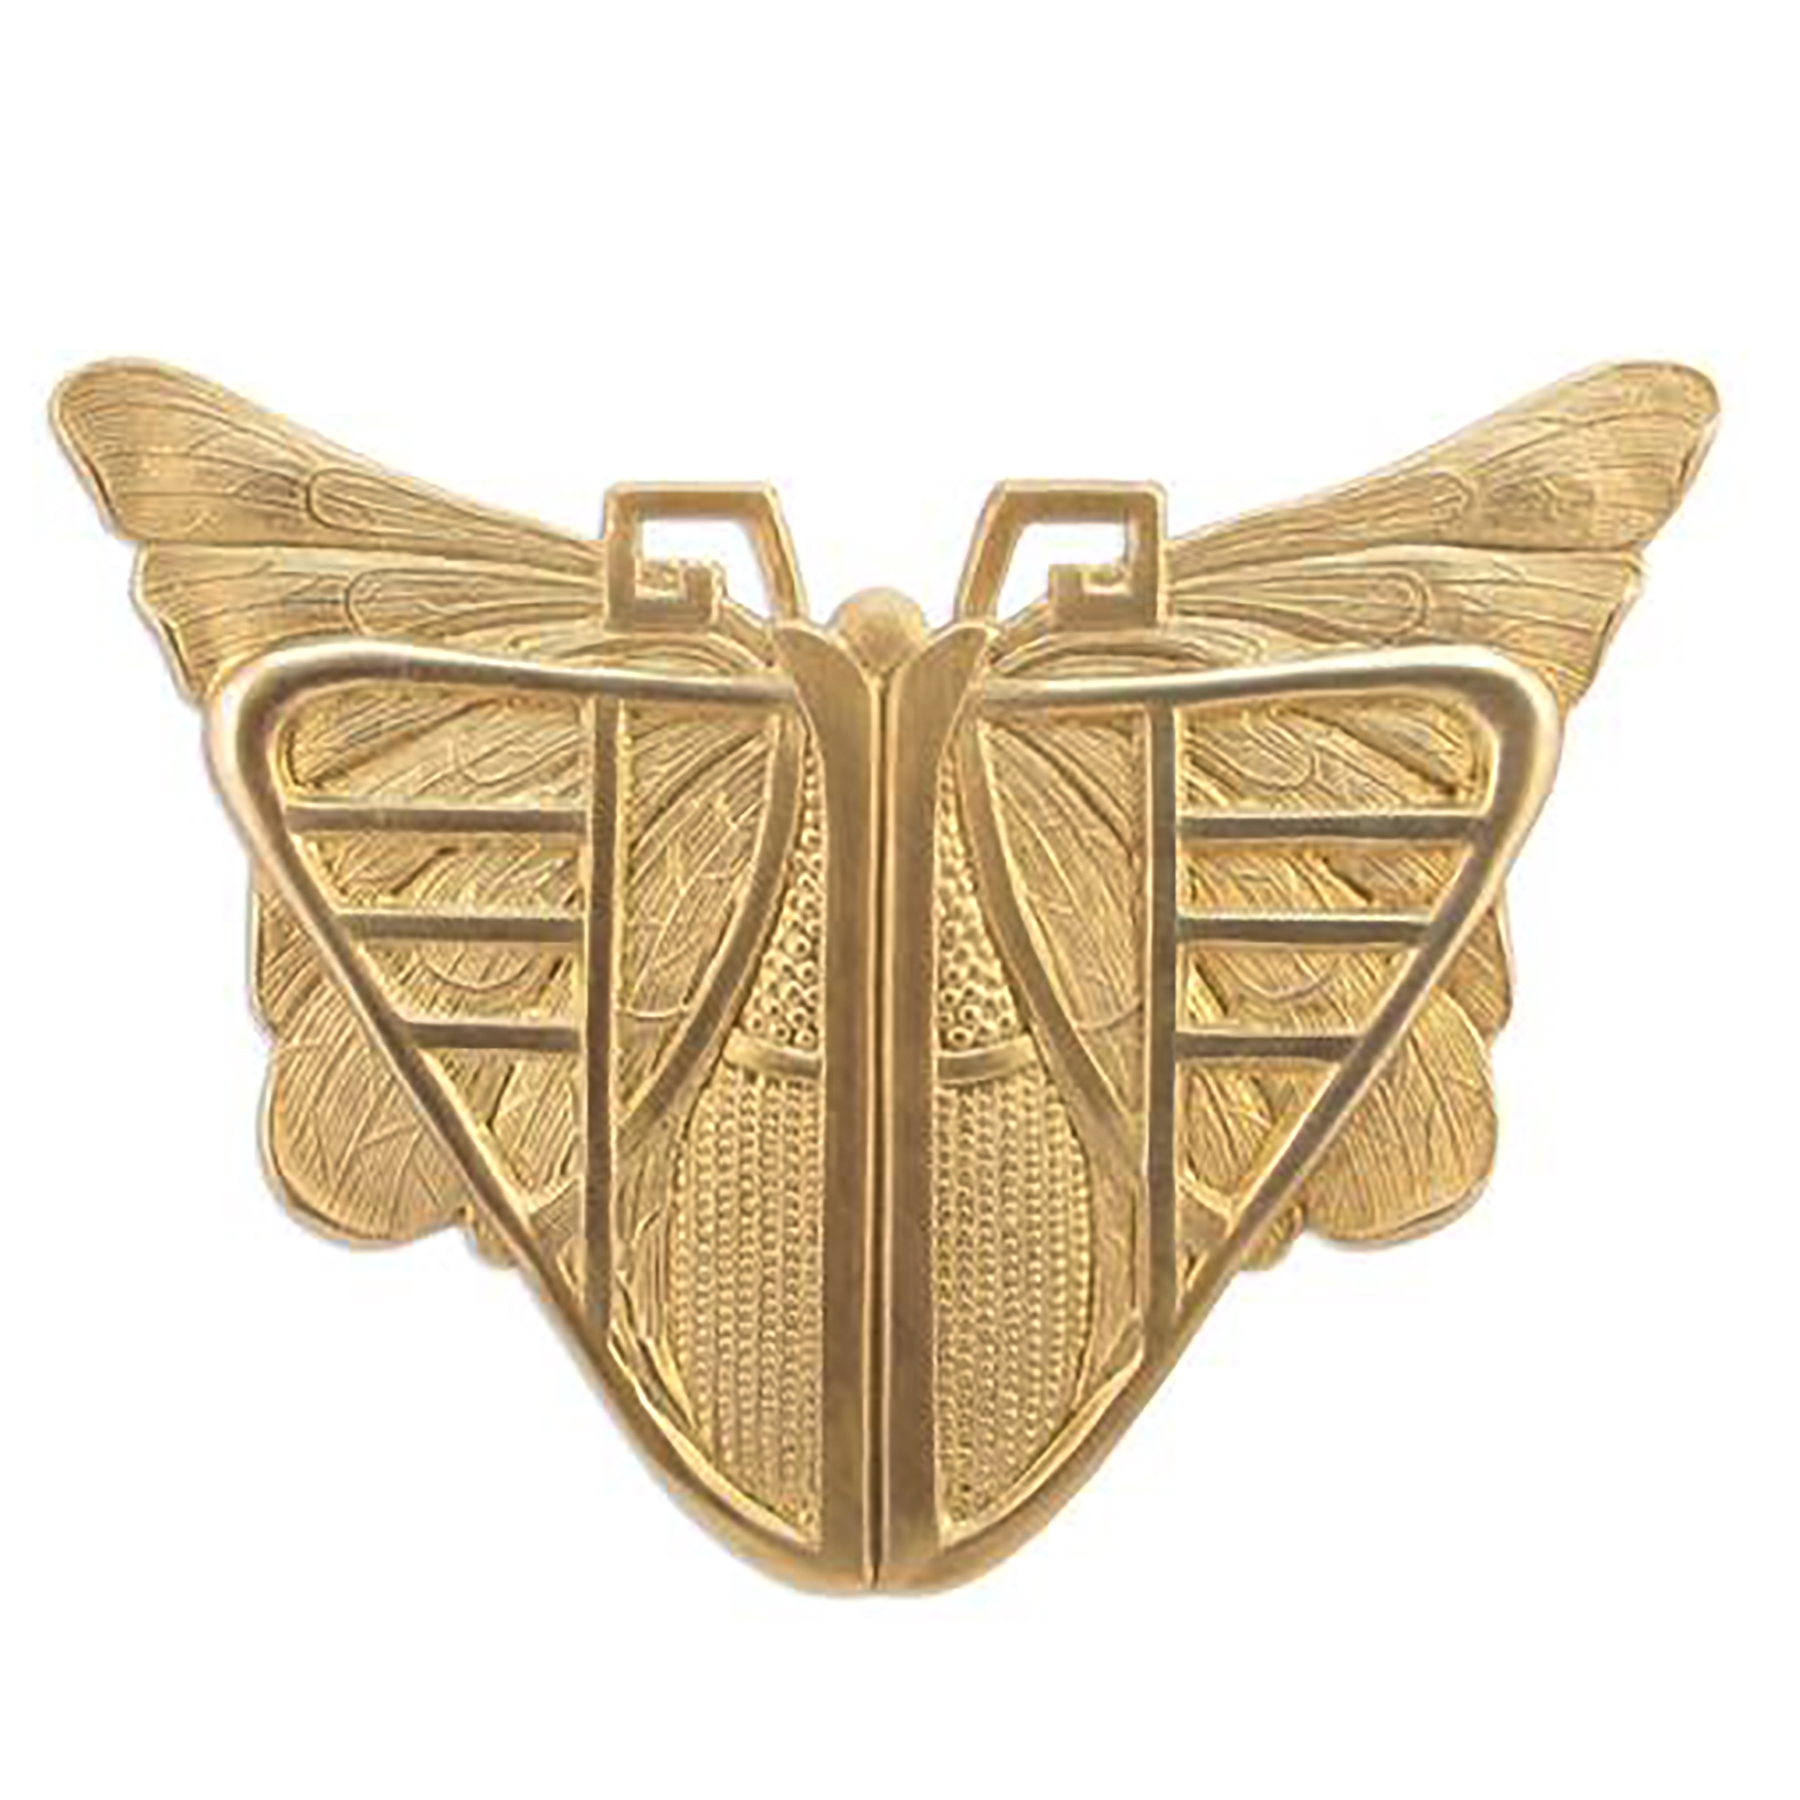 mothra stamping, raw brass, butterfly, unplated brass, brass stamping, brass, mothra, butterflies, Art Deco stampings, vintage supplies, brass jewelry parts, brass findings, jewelry making, jewelry supplies, B'sue Boutiques, 56x73mm, 03739